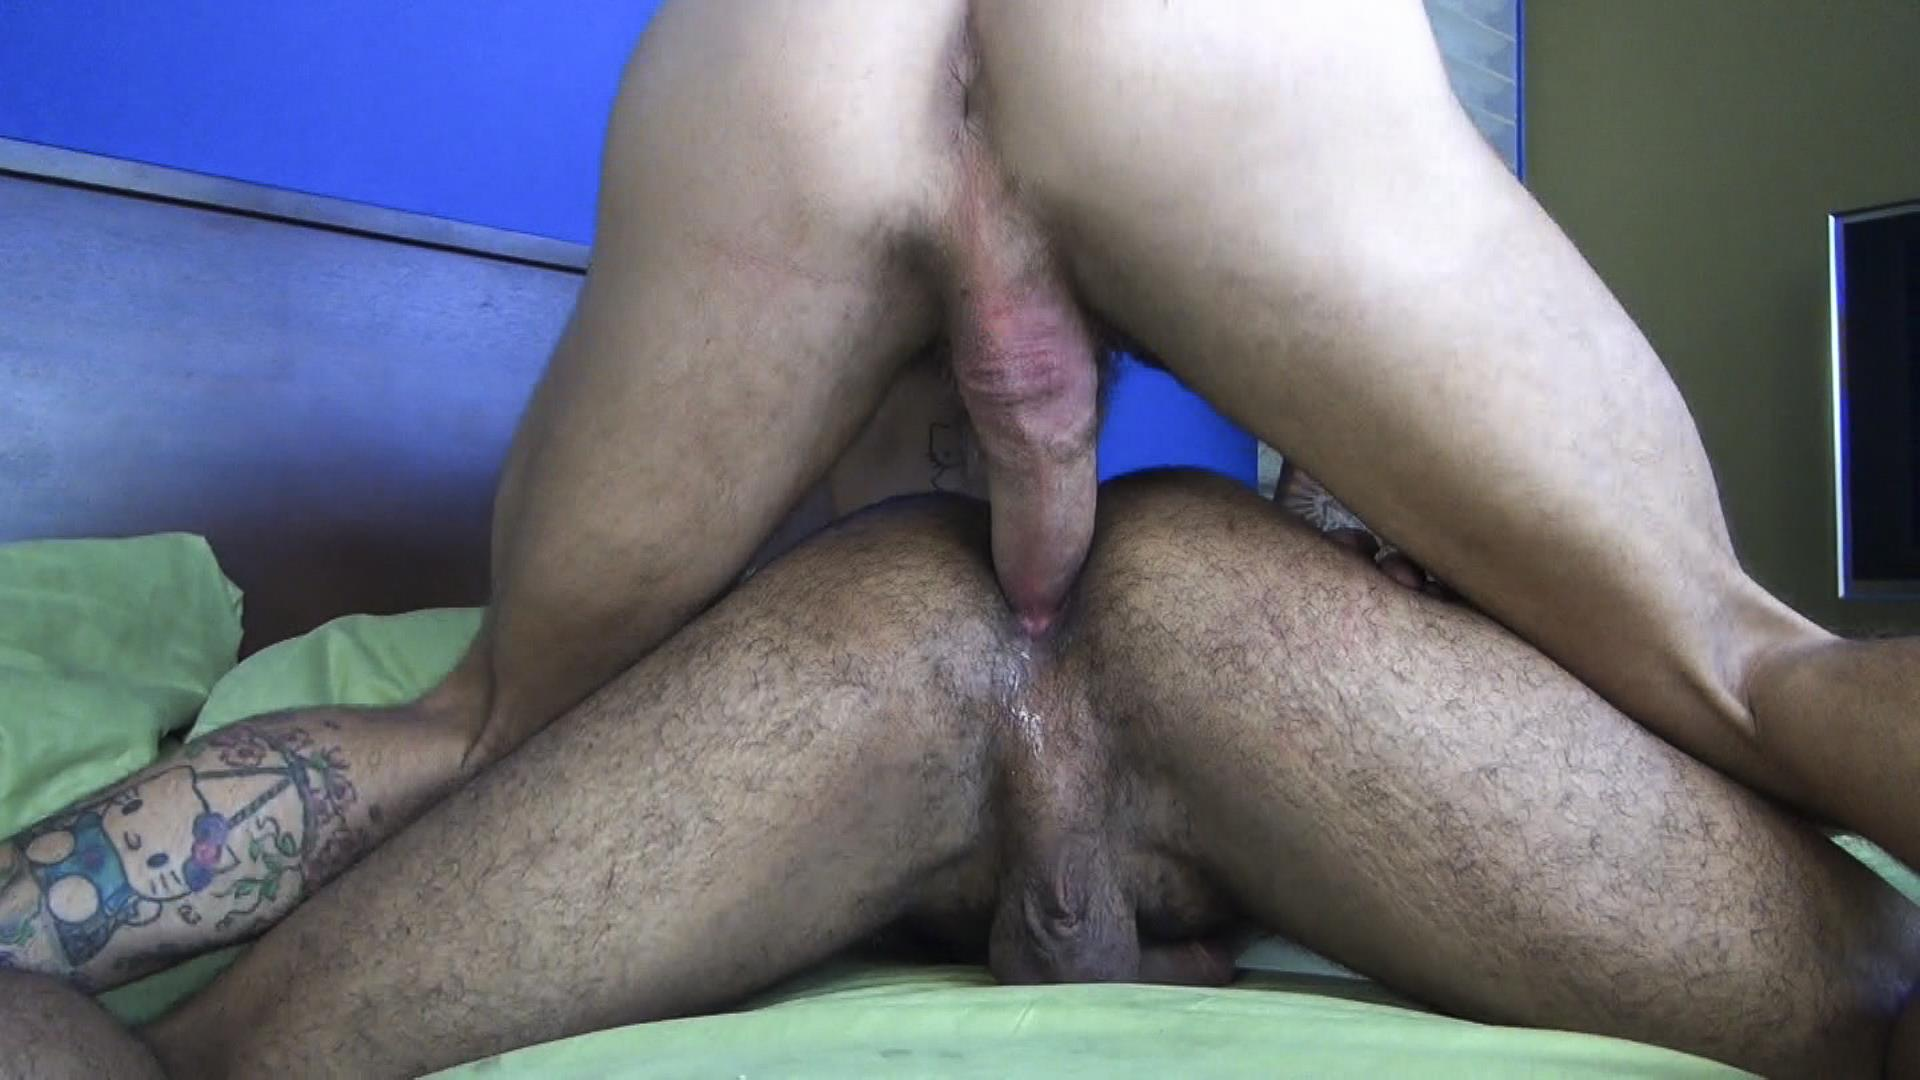 Raw Fuck Club Rikk York and Sean Duran Hairy Muscle Bareback Amateur Gay Porn 1 Hairy Muscle Studs & Real Life Boyfriends Sean Duran & Rikk York Bareback